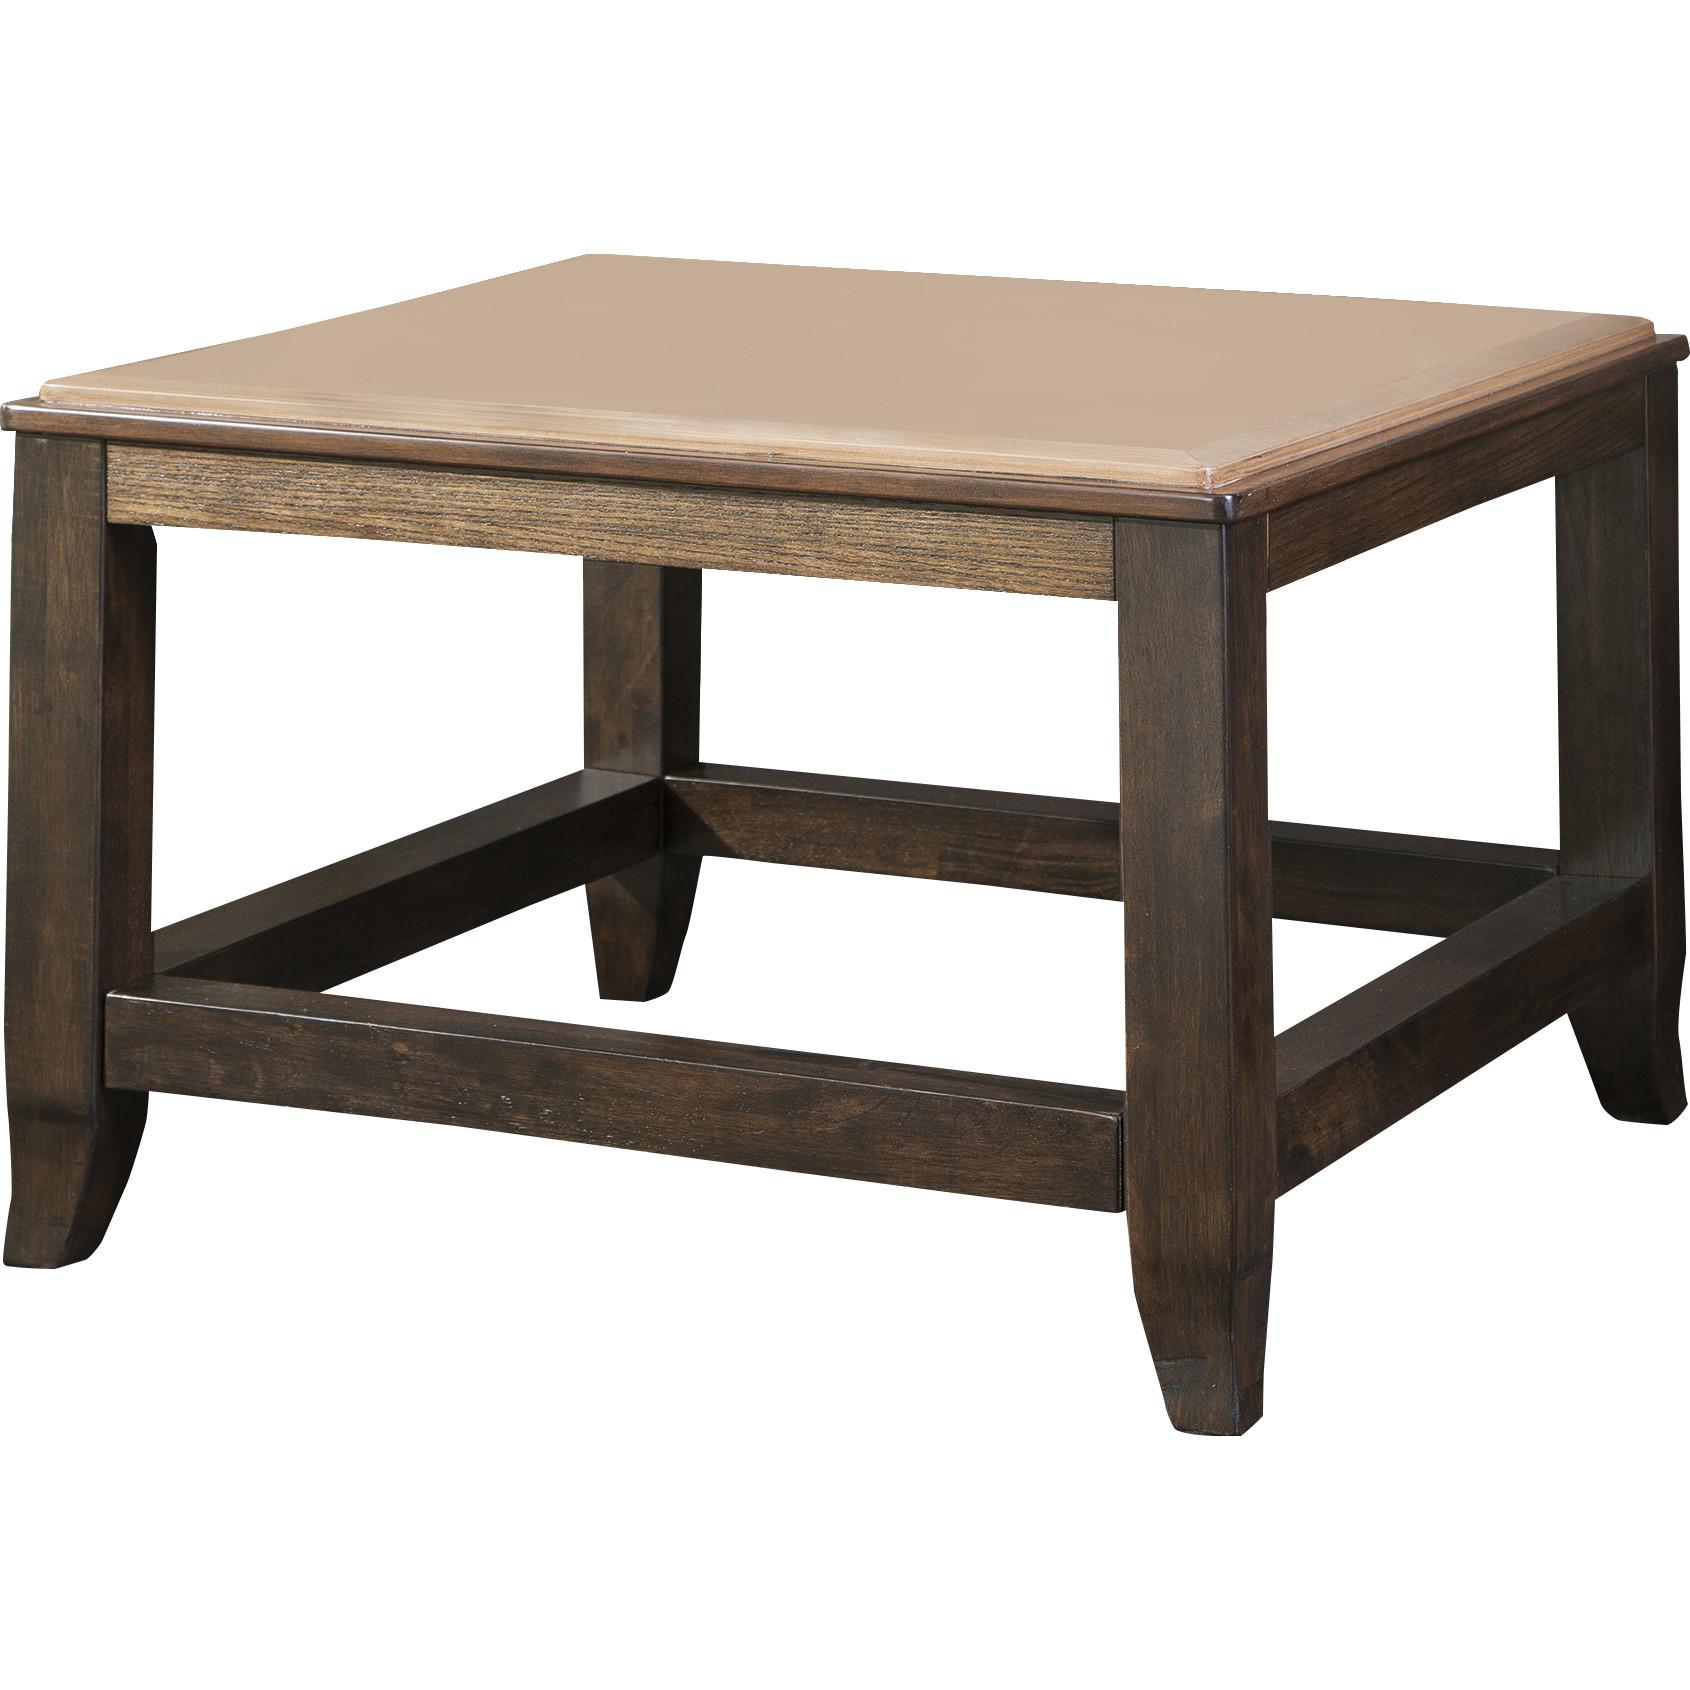 Best ideas about Ashley Furniture Coffee Tables . Save or Pin Signature Design by Ashley Mandoro Coffee Table & Reviews Now.